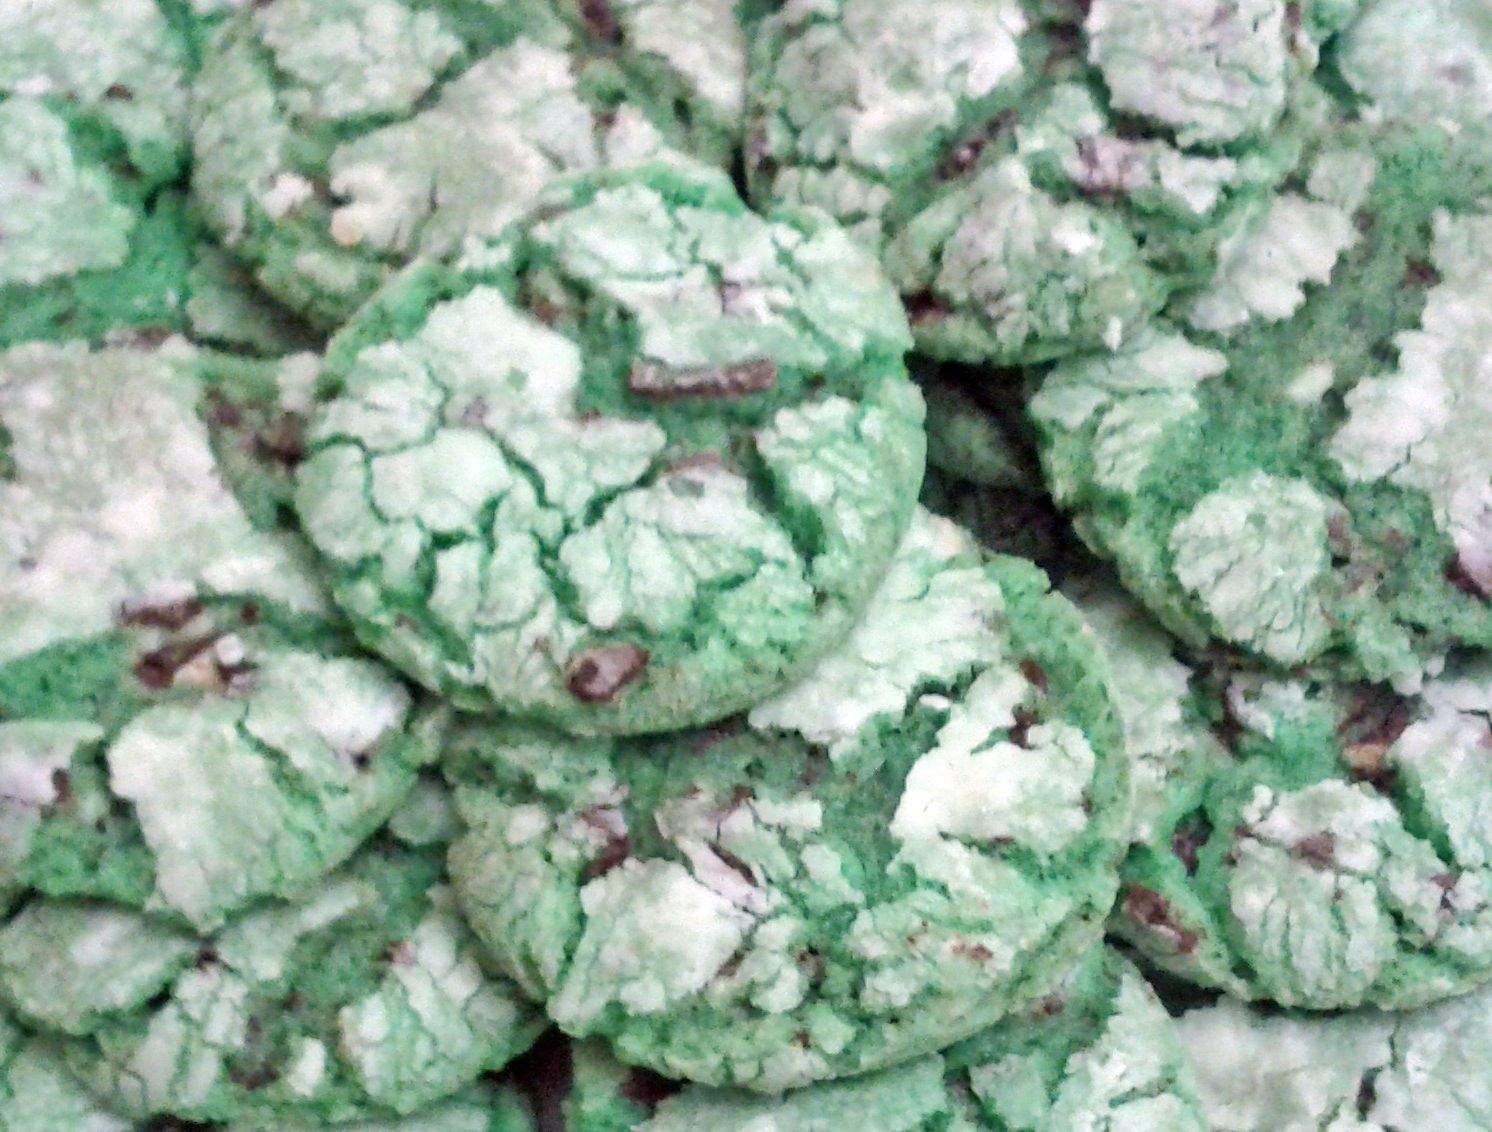 A Northwood Christmas: You're a Mean One, Mr. Grinch.... (Grinch Cookies and Snowy Ornaments) #grinchcookies A Northwood Christmas: You're a Mean One, Mr. Grinch.... (Grinch Cookies and Snowy Ornaments) #grinchcookies A Northwood Christmas: You're a Mean One, Mr. Grinch.... (Grinch Cookies and Snowy Ornaments) #grinchcookies A Northwood Christmas: You're a Mean One, Mr. Grinch.... (Grinch Cookies and Snowy Ornaments) #grinchcookies A Northwood Christmas: You're a Mean One, Mr. Grinch.... (Grinch #grinchcookies